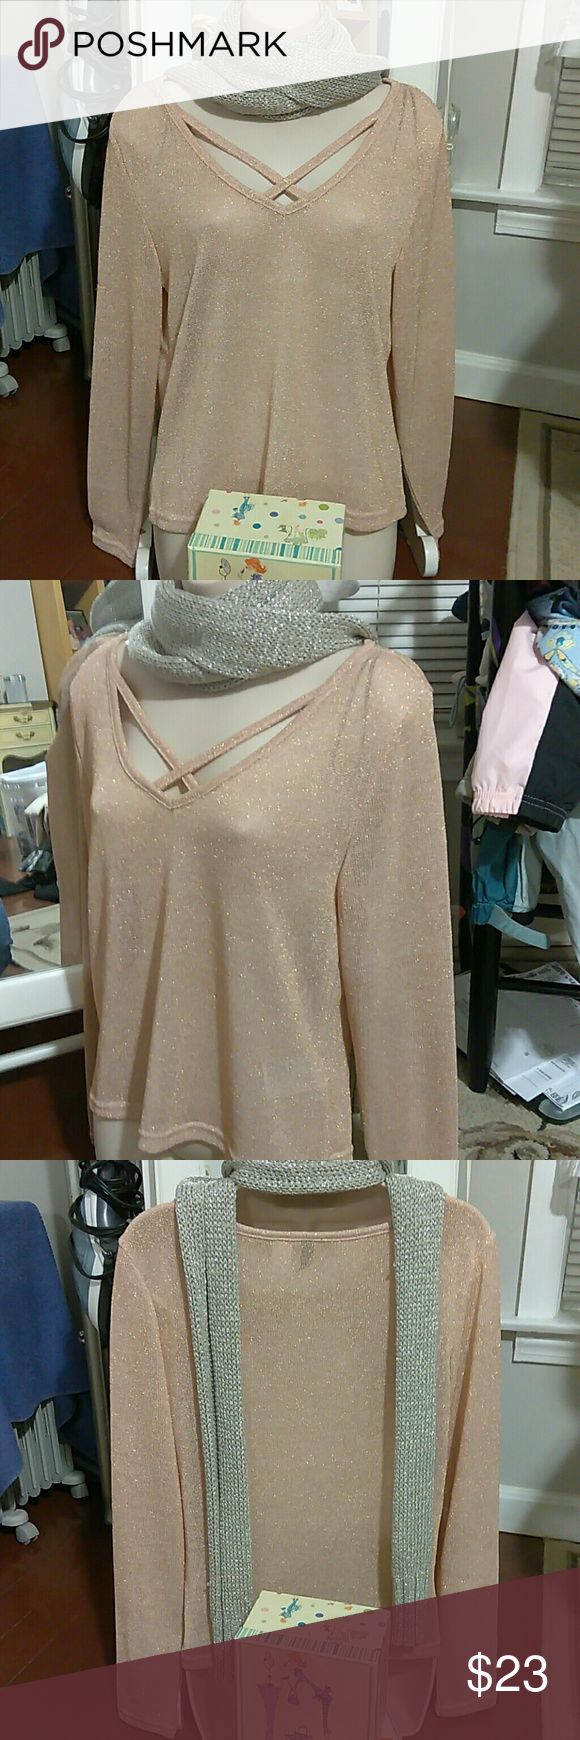 H&M DAVID L Sparkly Top Festive H&M DAVID Large Sparkly Peach Colored Pull Over Top, Long Sleeve with Criss cross V-neck, Beautiful over a Black Tank with Black Skinny Jeans and Boots!!! In Excellent Condition, worn once if that! From a smoke free home! H&M Tops